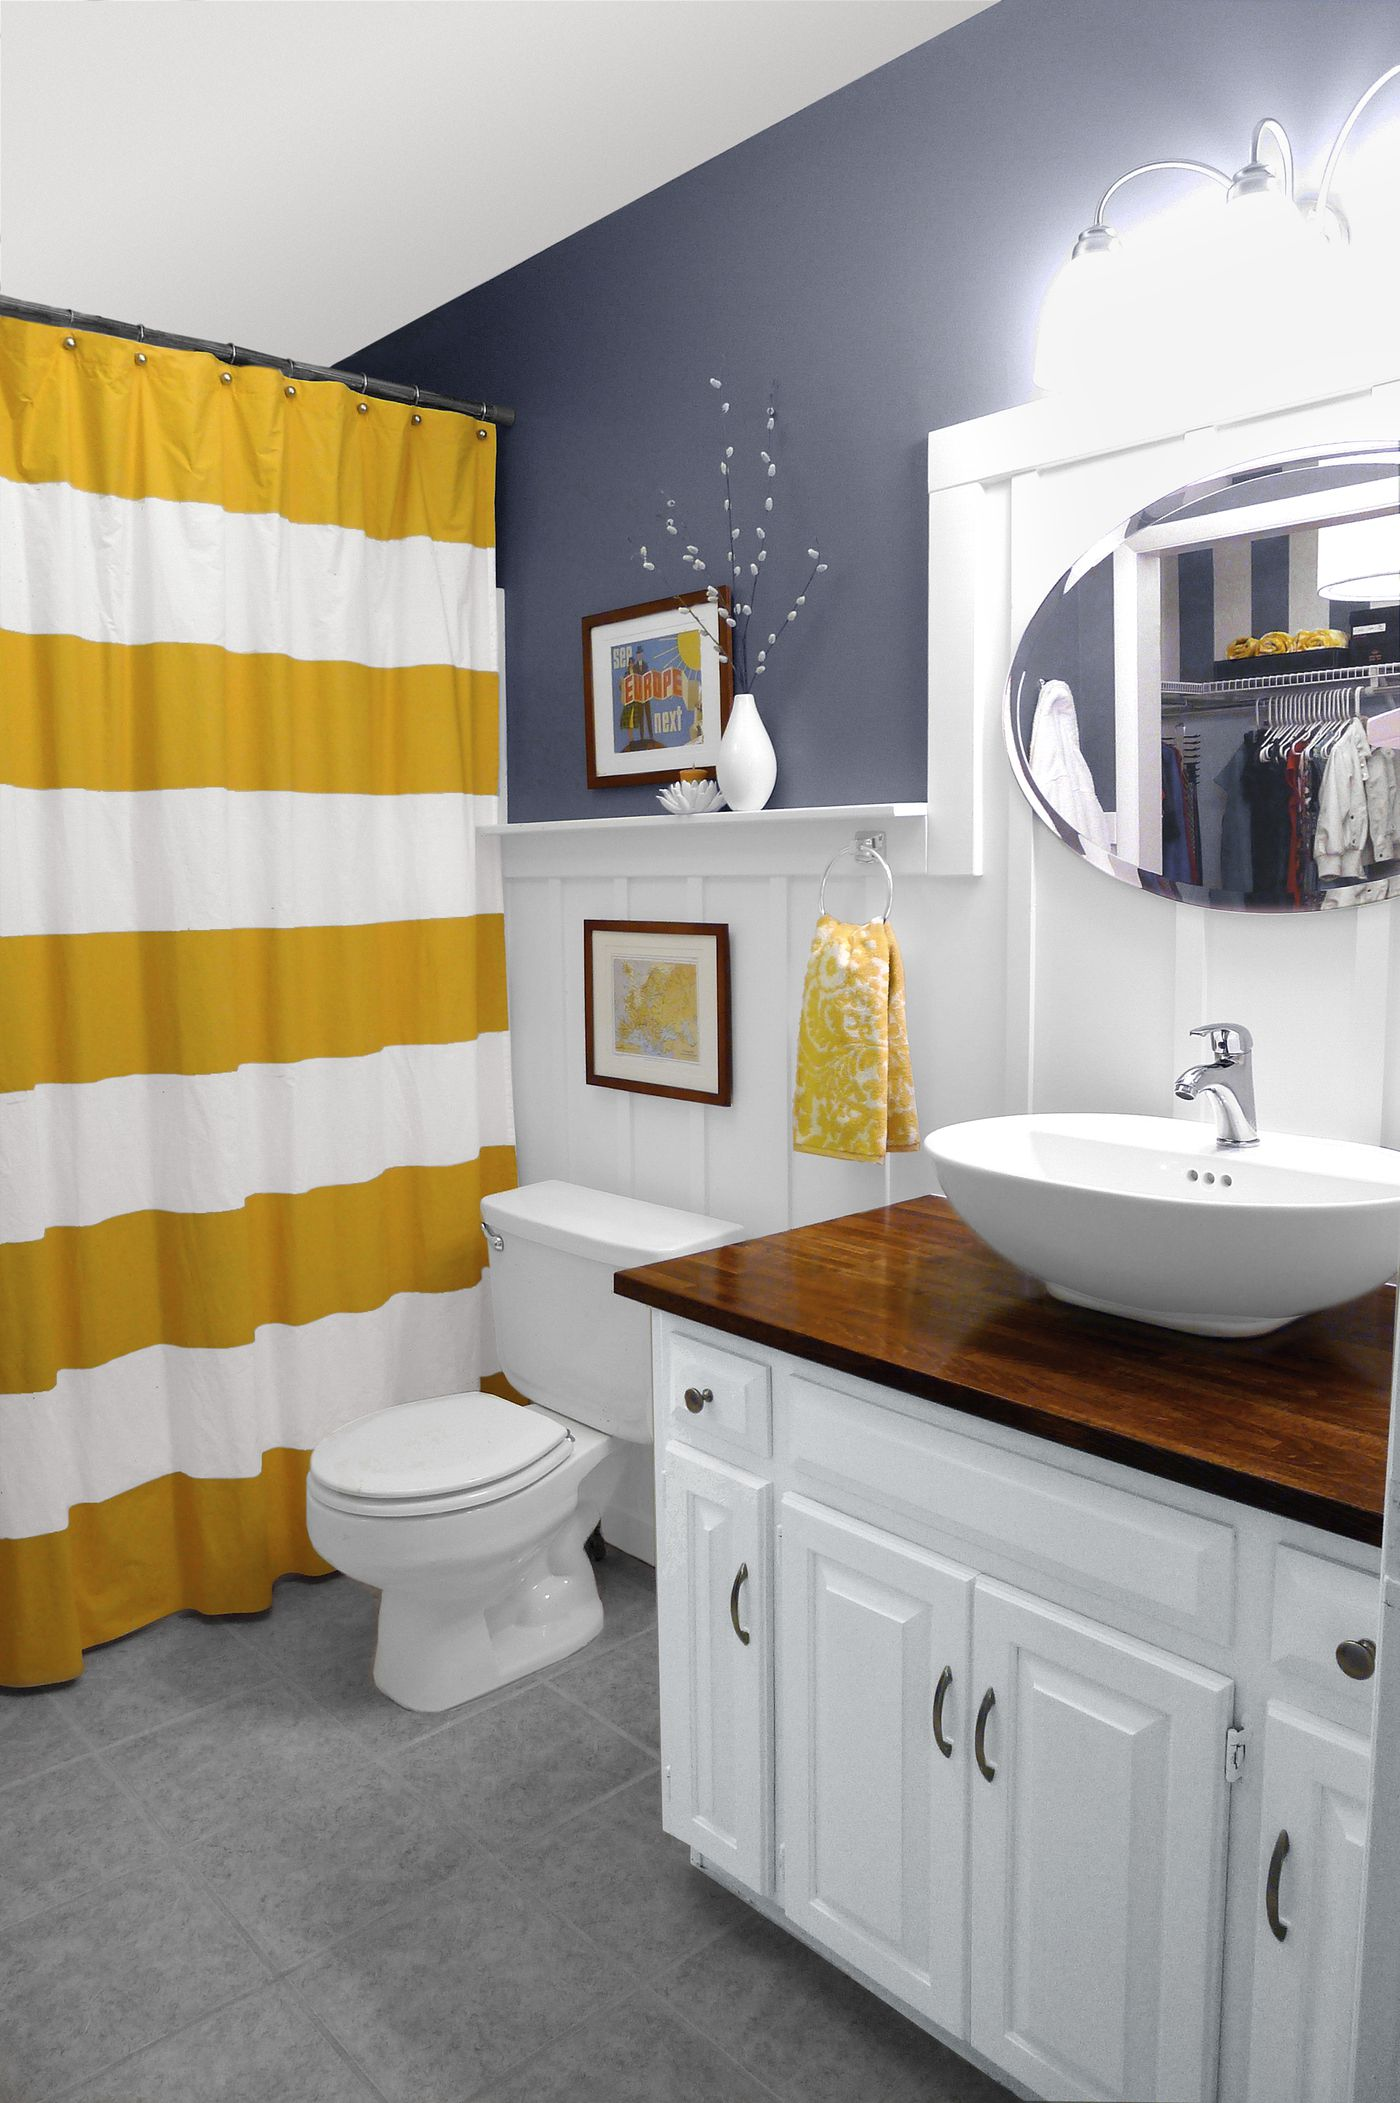 23 Savvy And Inspiring Small Bath Designs This Old House